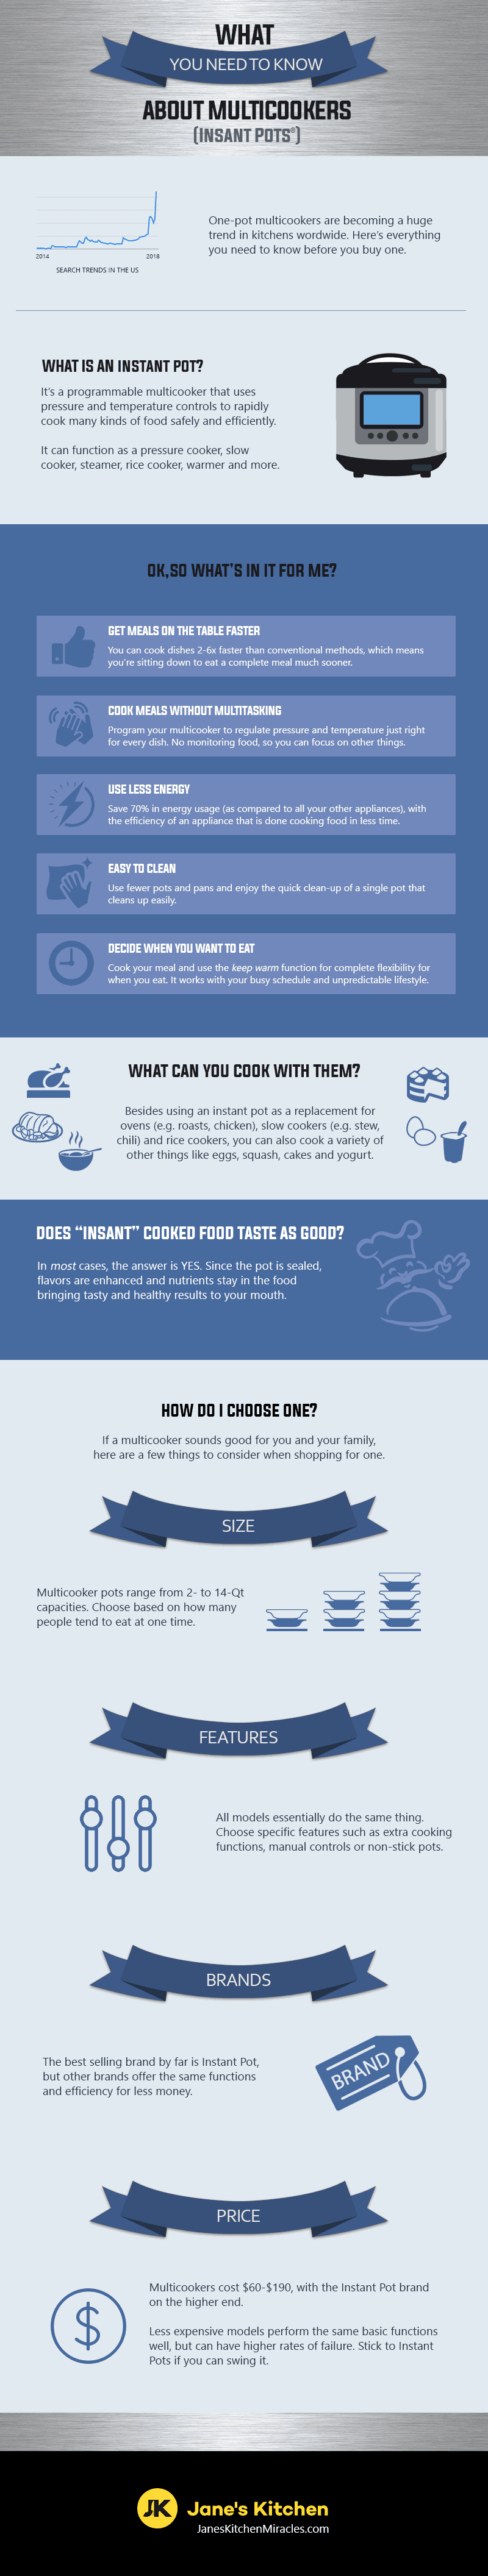 Instant Pot Infographic - How it Works